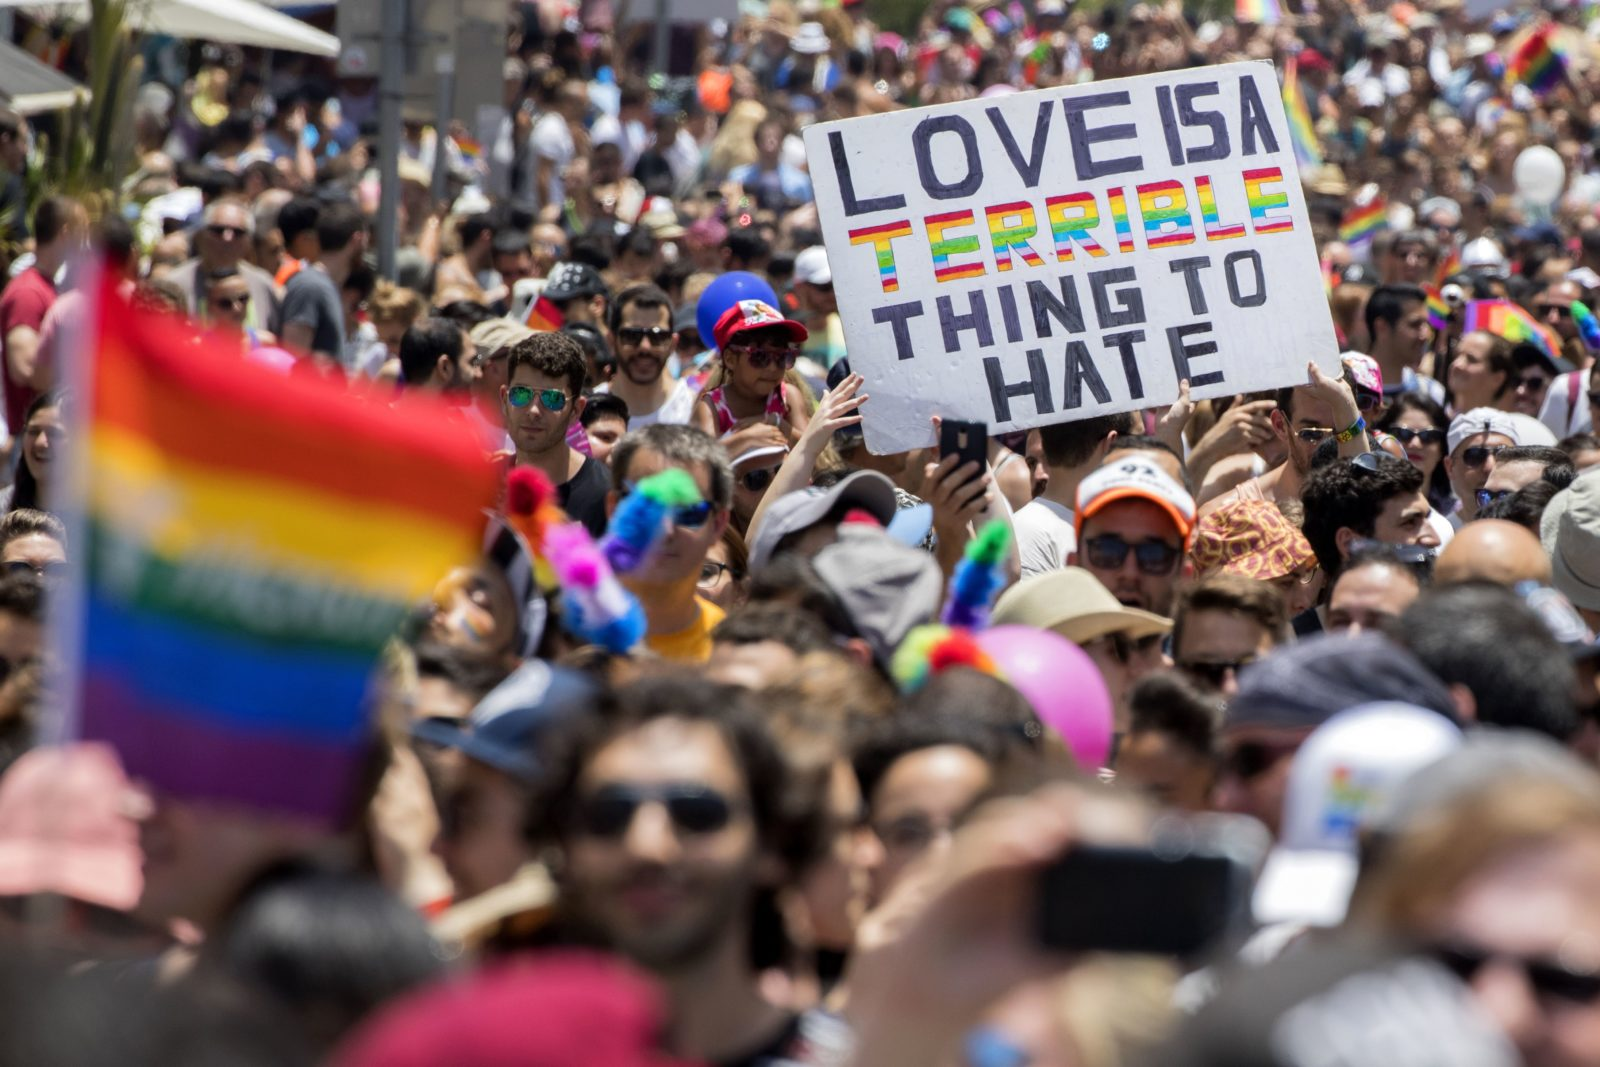 TOPSHOT - Participants take part in the annual Gay Pride parade in the Israeli city of Tel Aviv, on June 9, 2017. Tens of thousands of revellers from Israel and abroad packed the streets of Tel Aviv for the city's annual Gay Pride march, billed as the Middle East's biggest. / AFP PHOTO / JACK GUEZ (Photo credit should read JACK GUEZ/AFP/Getty Images)